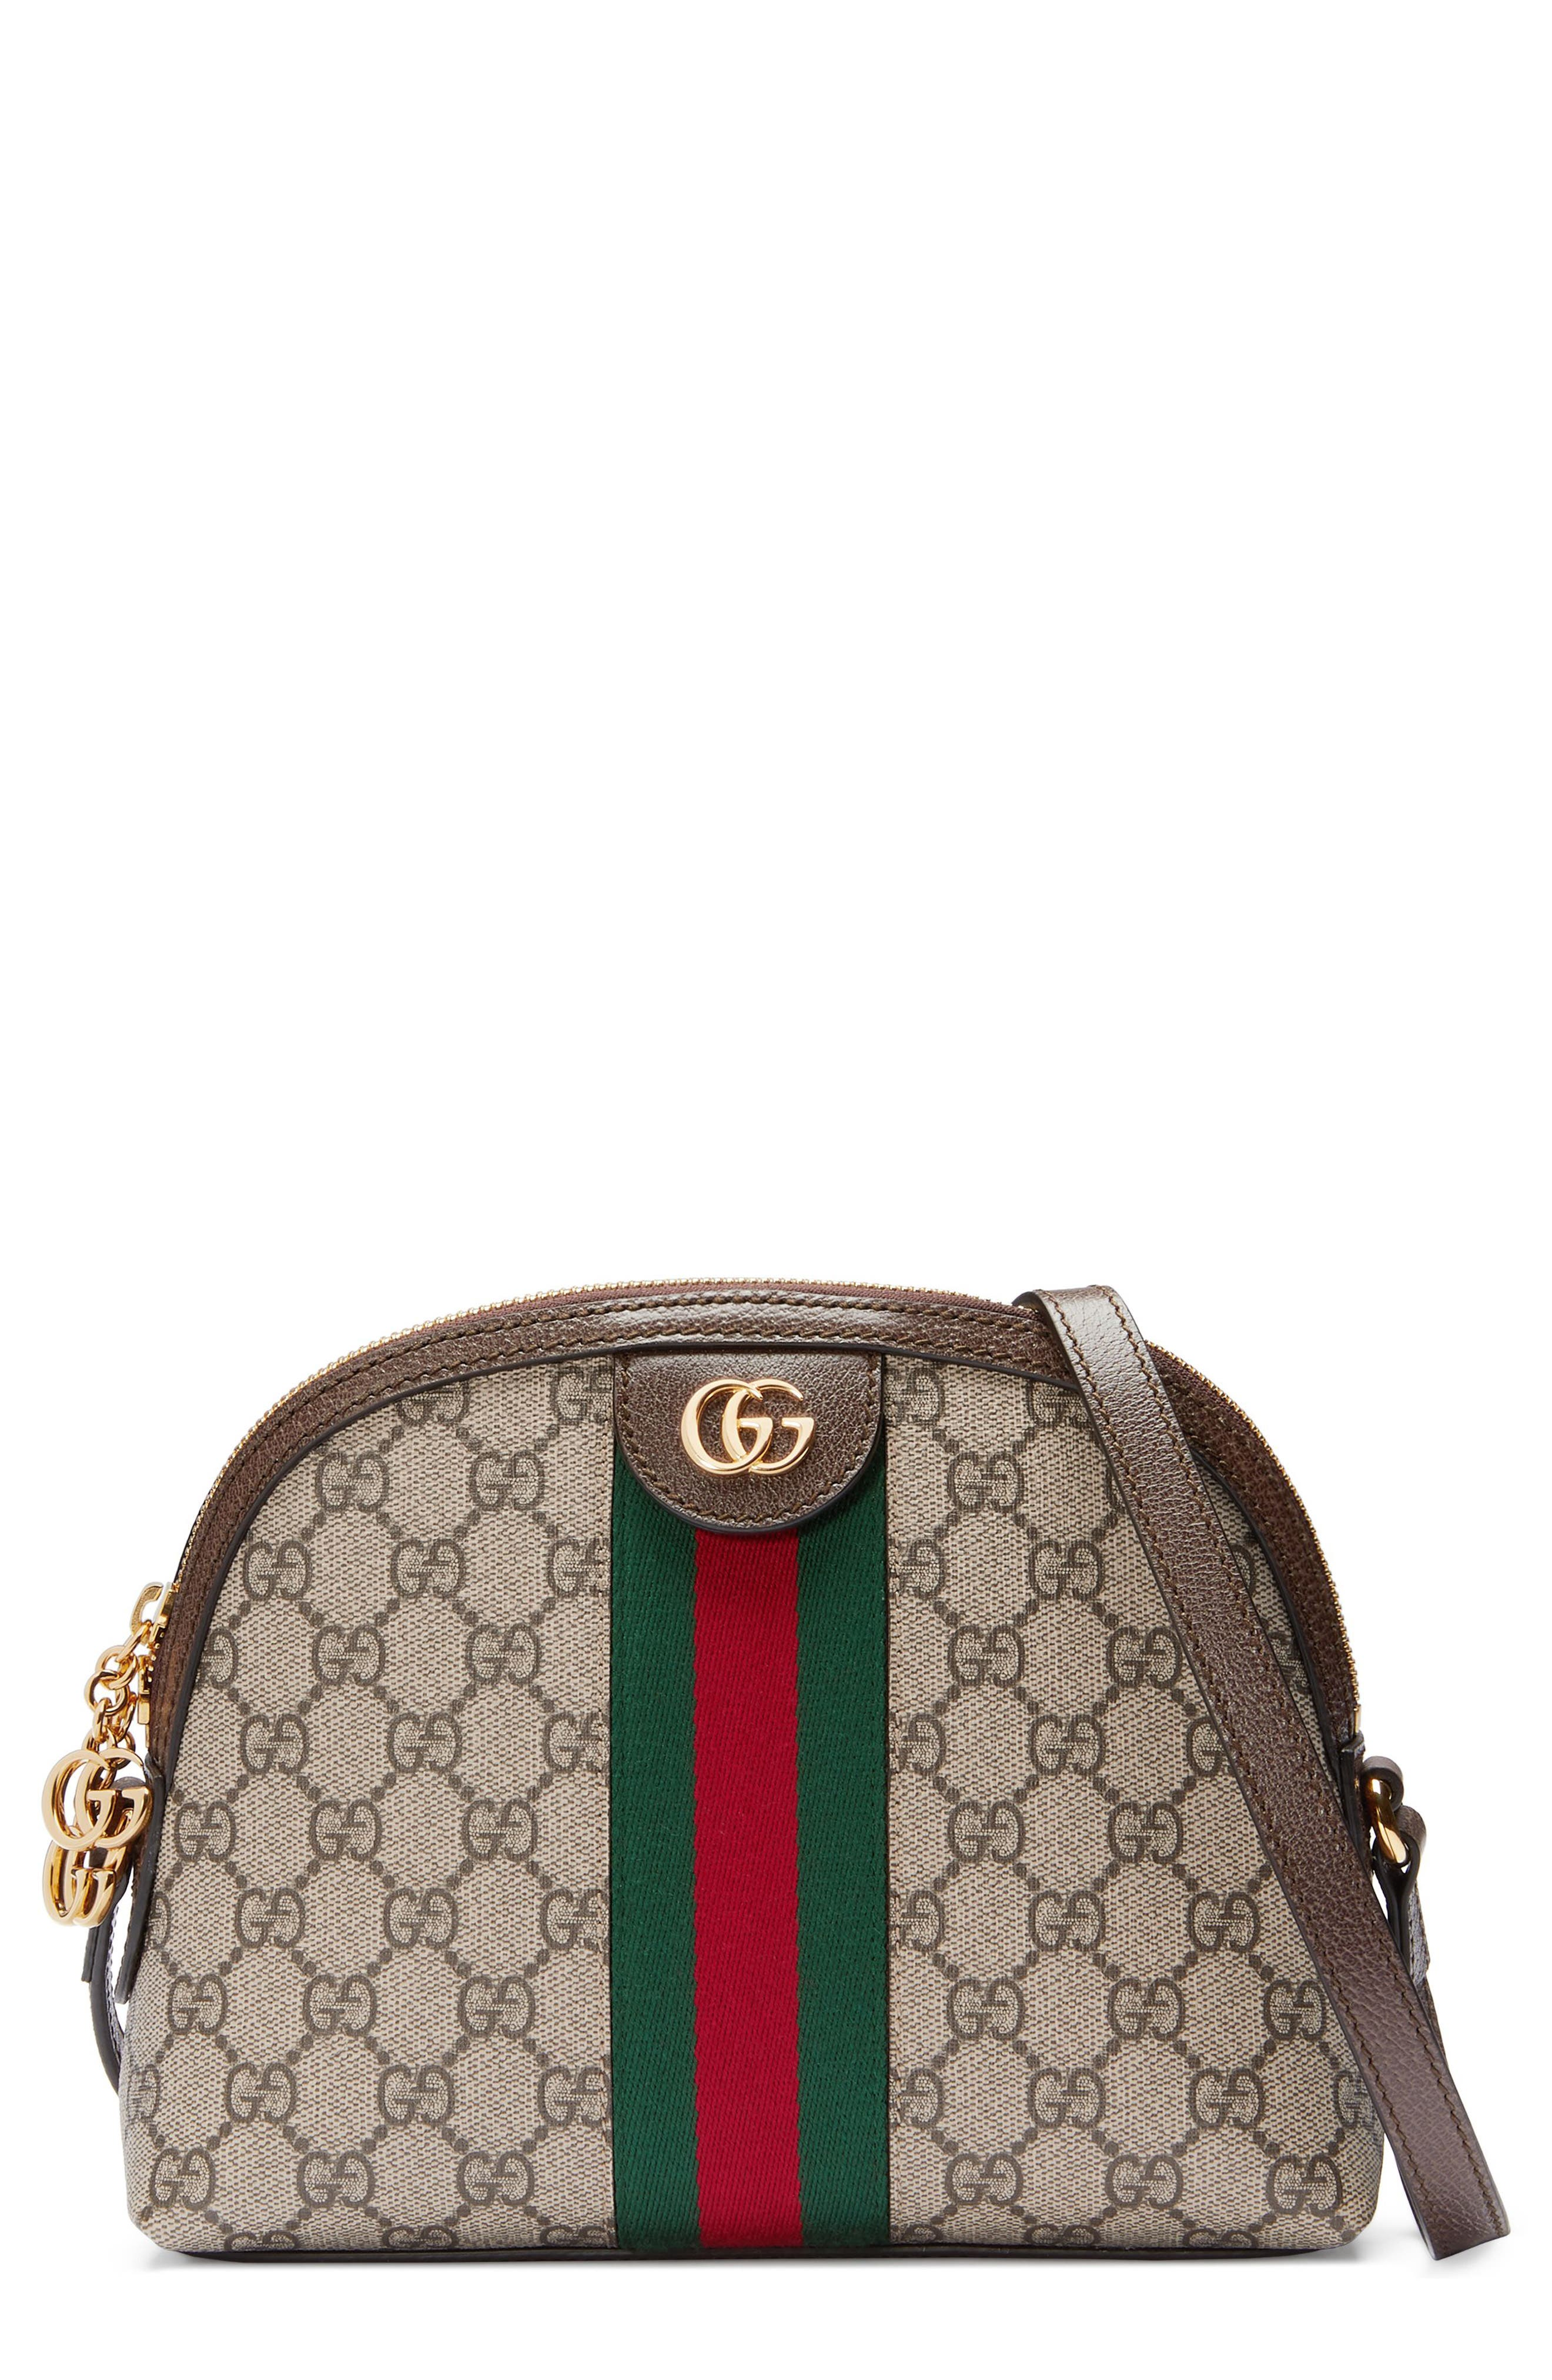 Ophidia Leather-trimmed Printed Coated-canvas Shoulder Bag - Brown Gucci 0TISBncmo